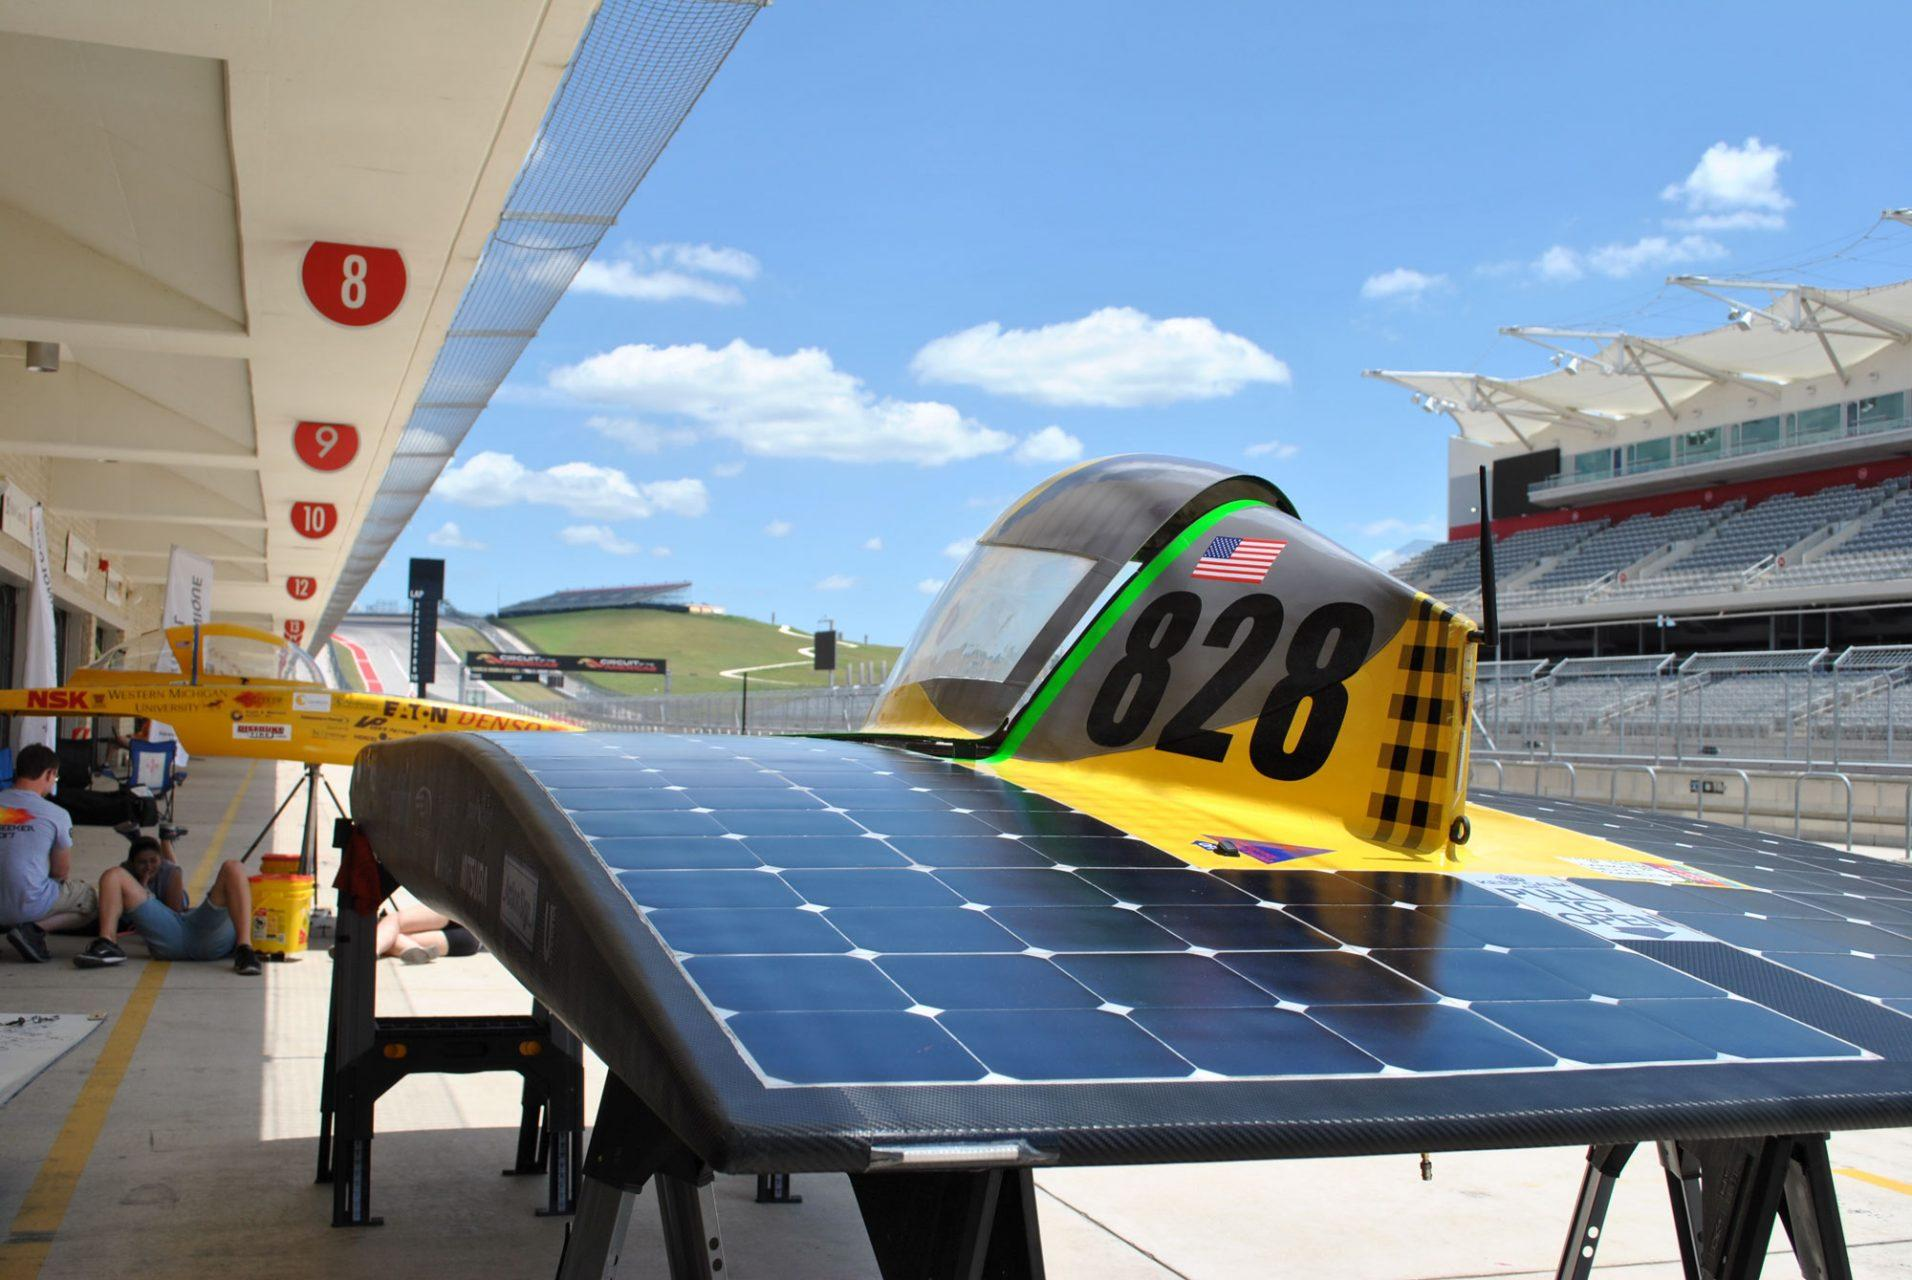 Team Sunergy races toward a sustainable future